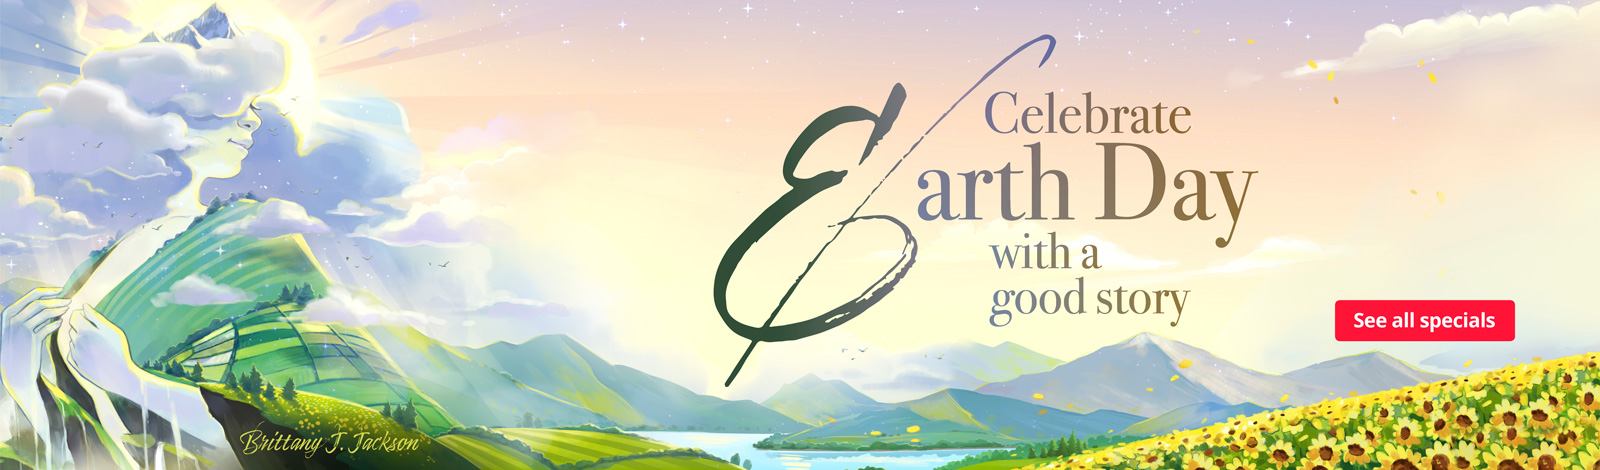 Celebrate Earth Day with a good story